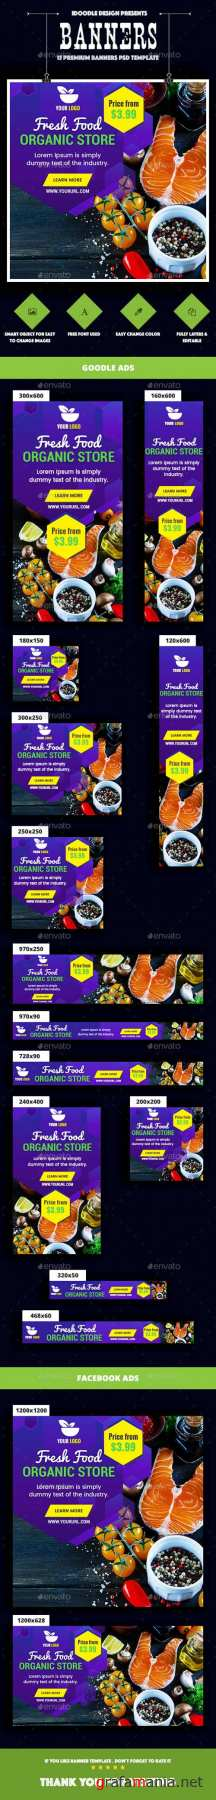 Food & Restaurant Banners Ad 20152901